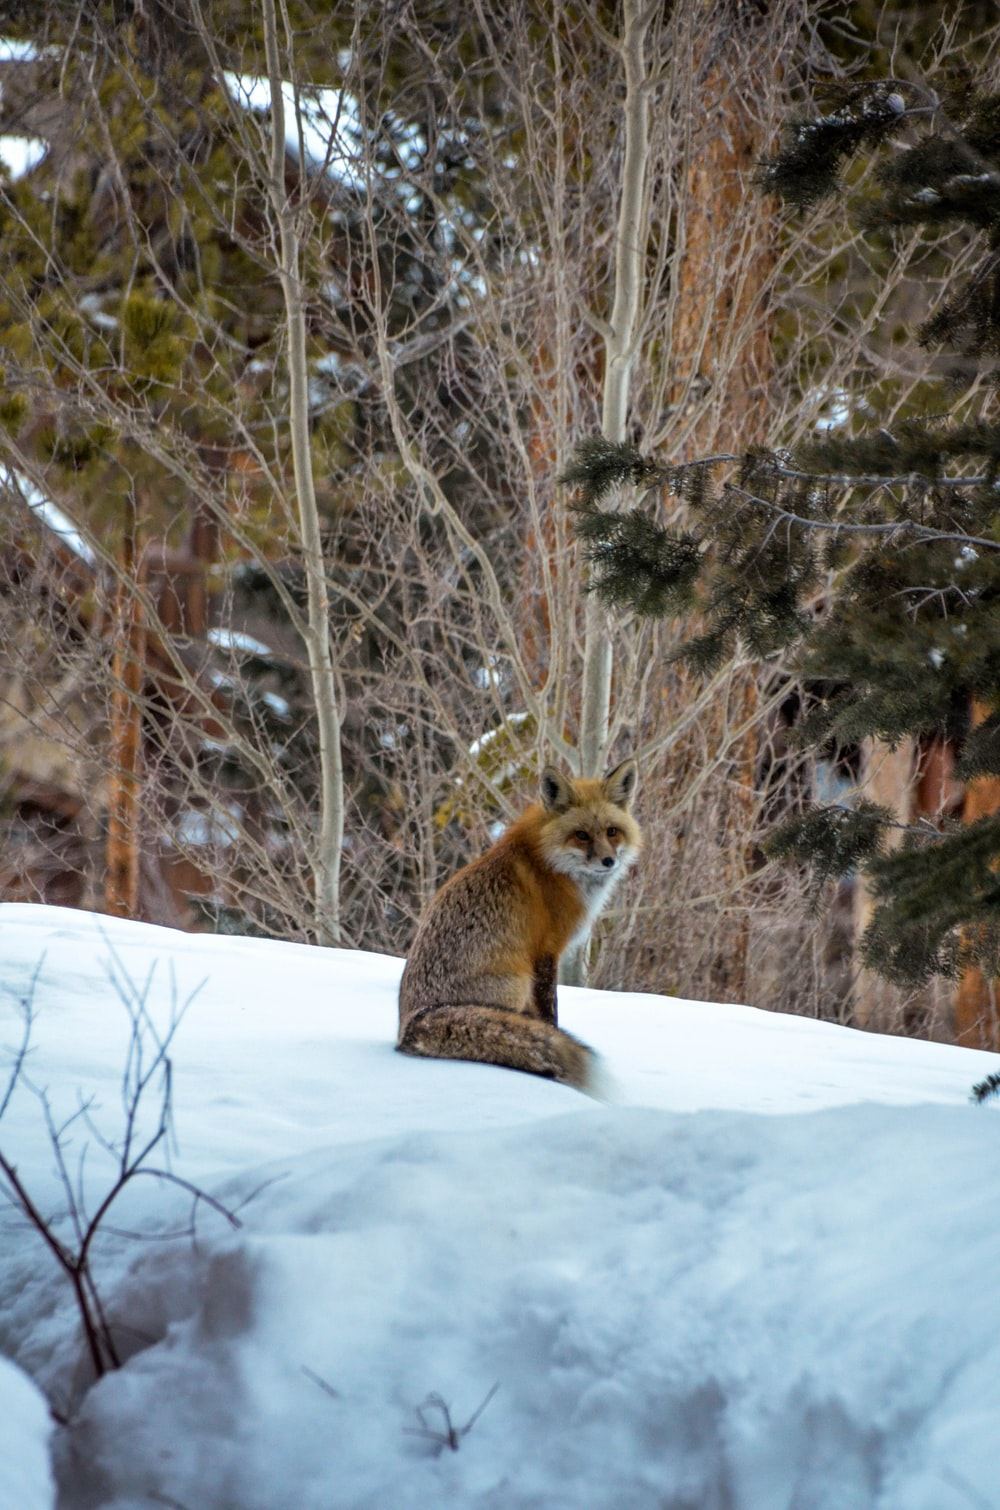 brown and black fox on snow covered ground during daytime